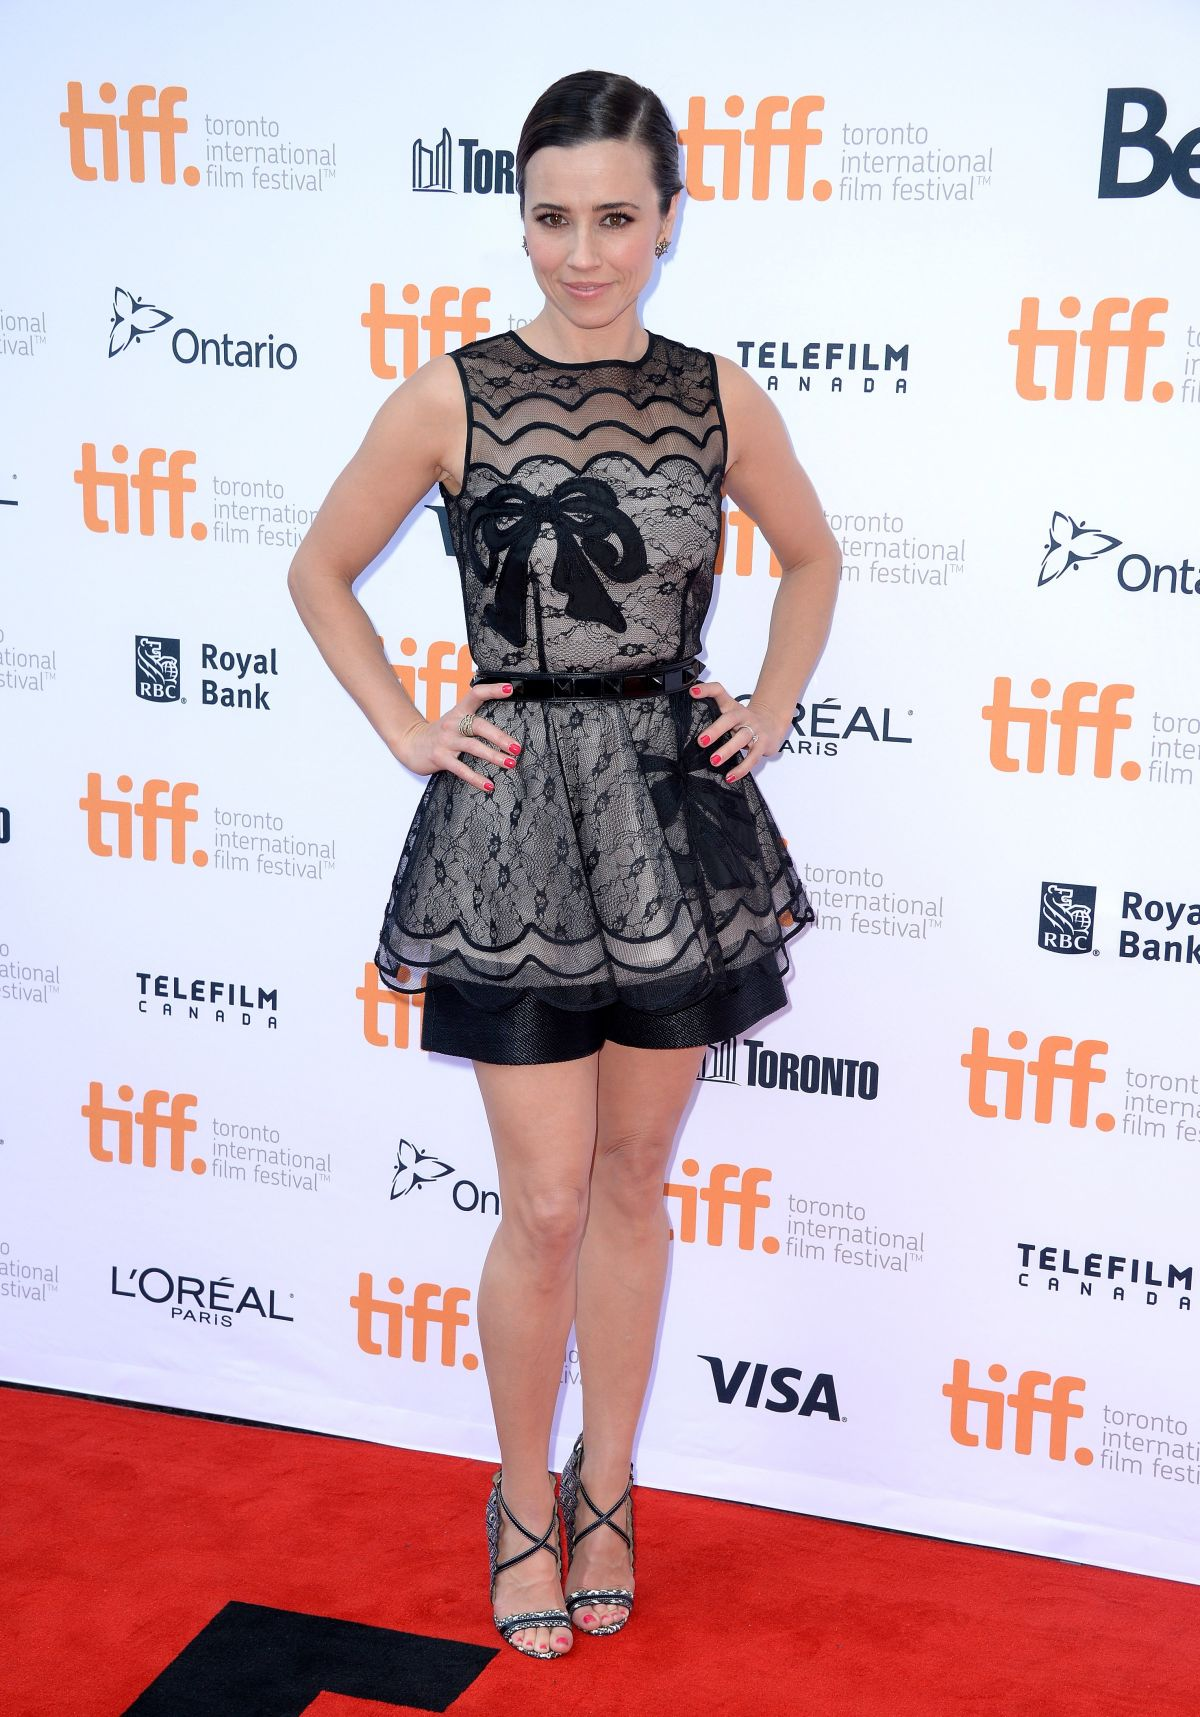 linda-cardellini-at-welcome-to-me-premiere-in-toronto_1